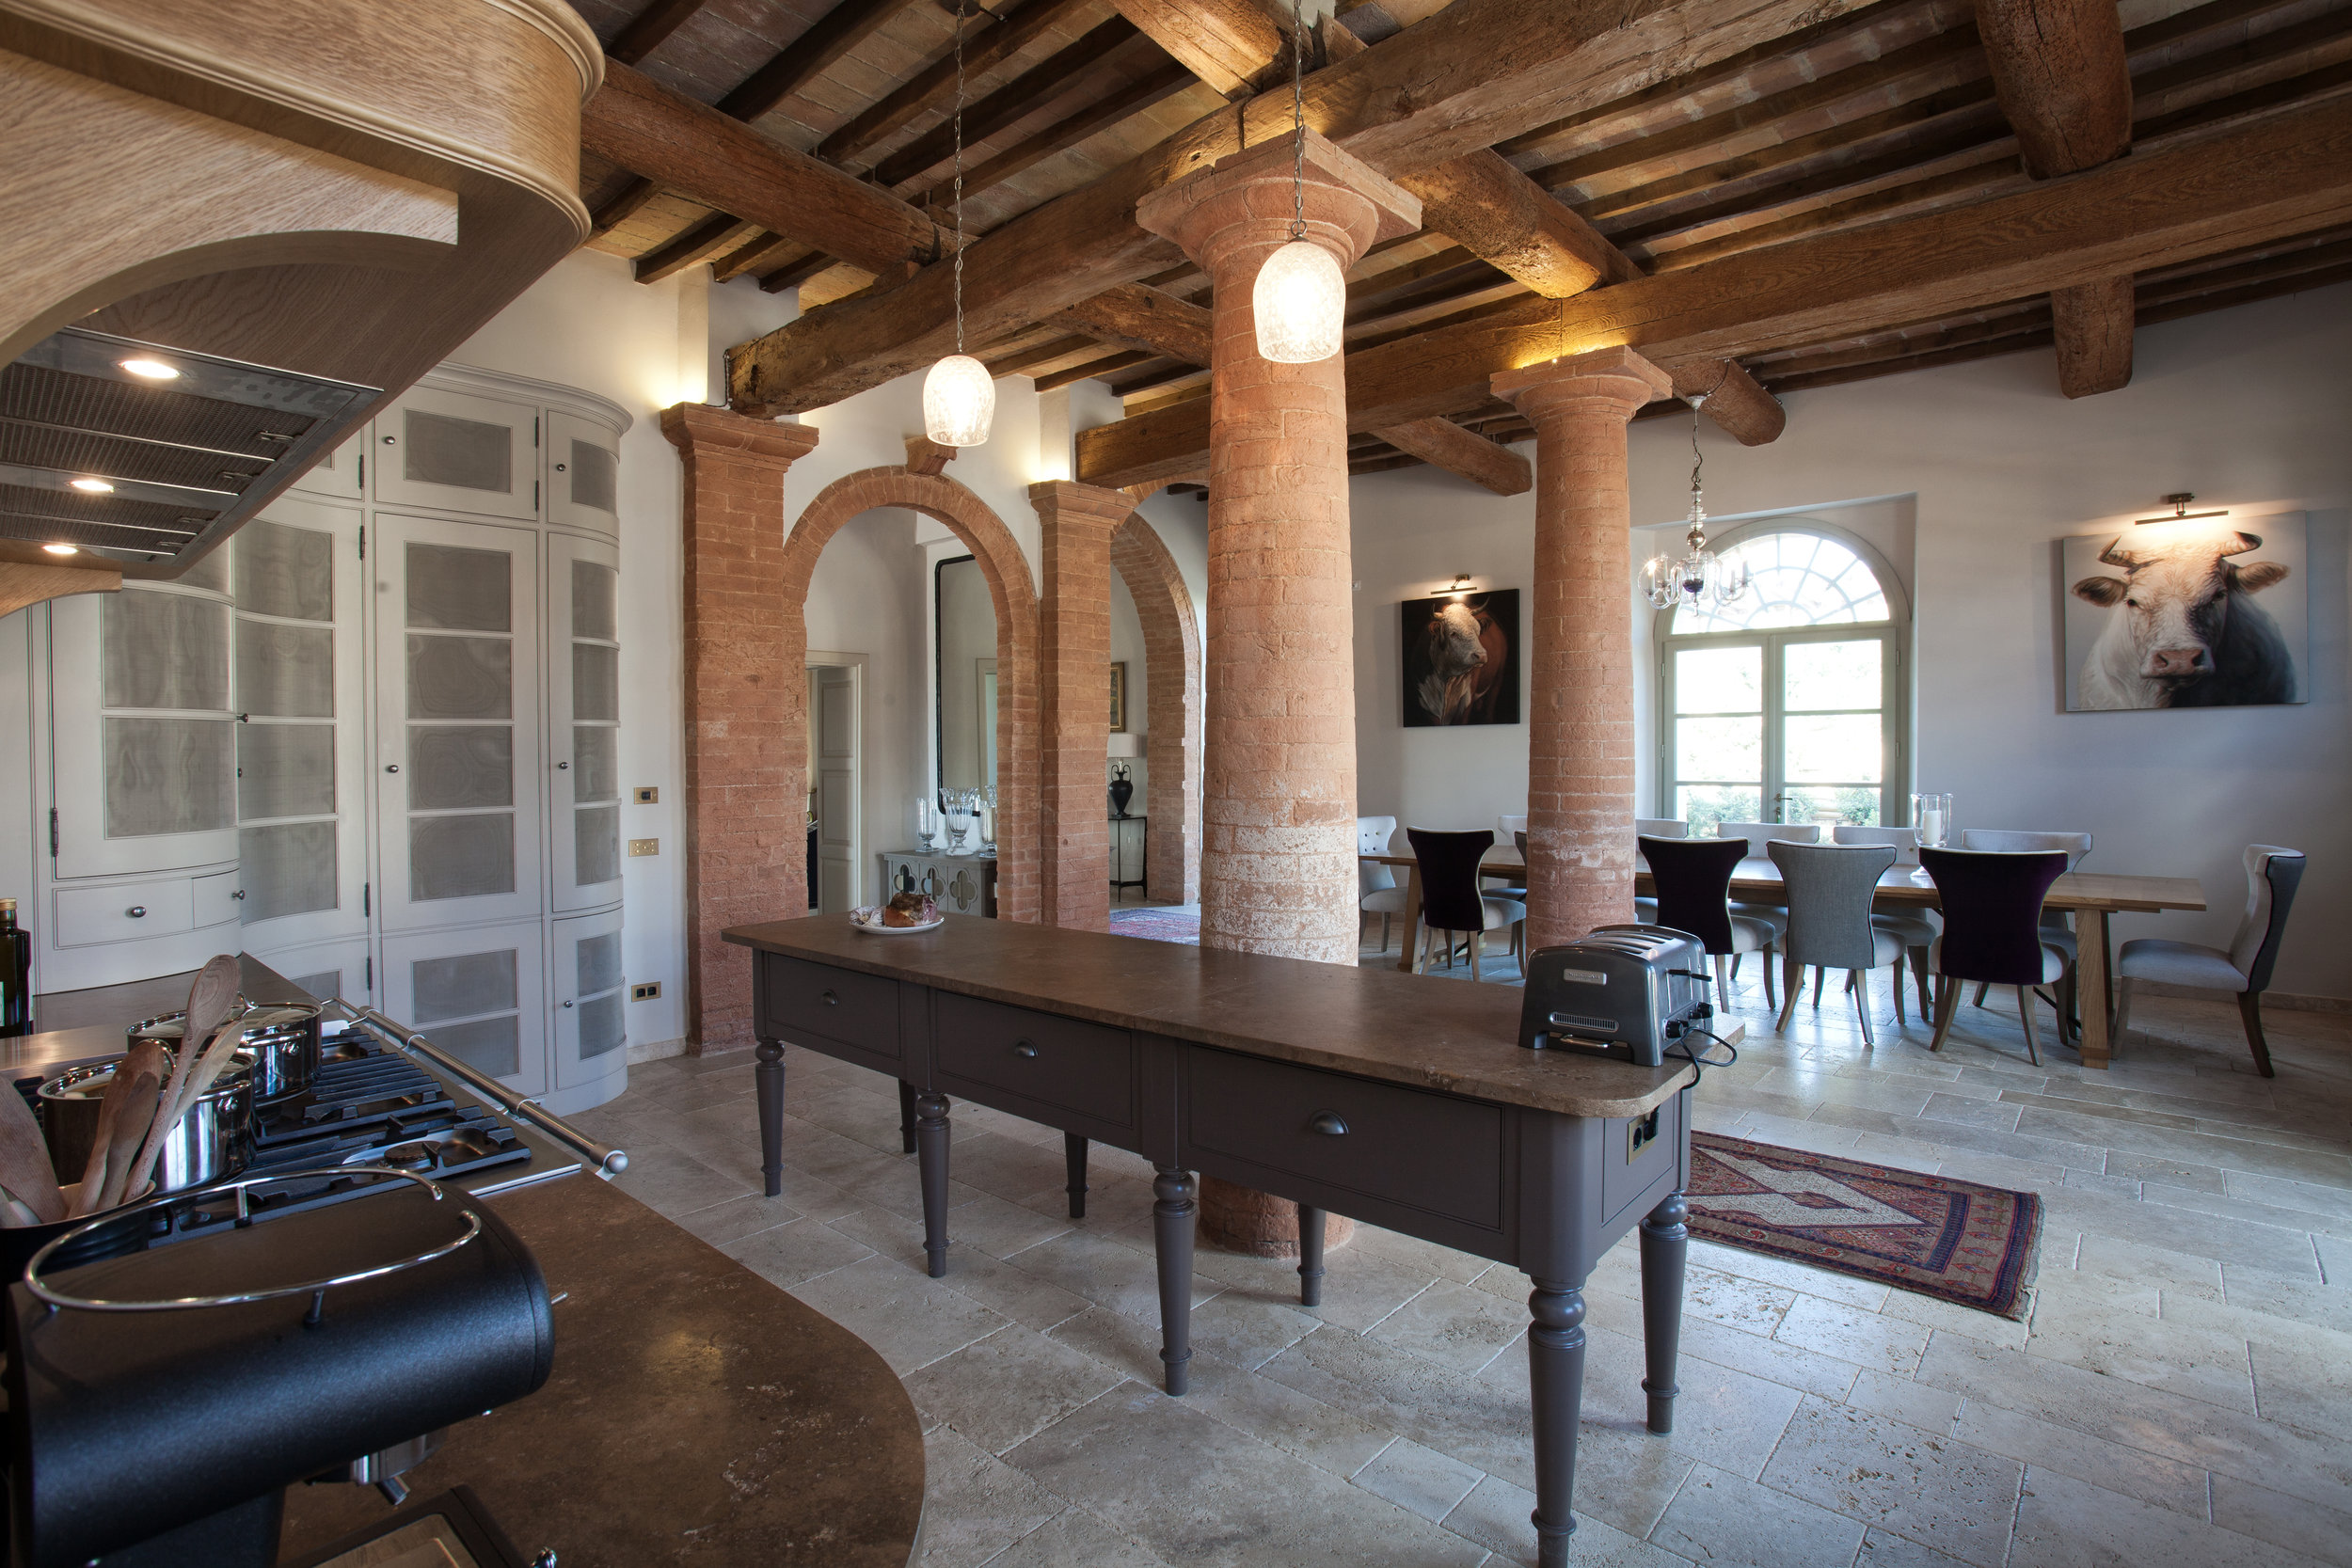 The kitchen and dining area are separated by old brick pillars